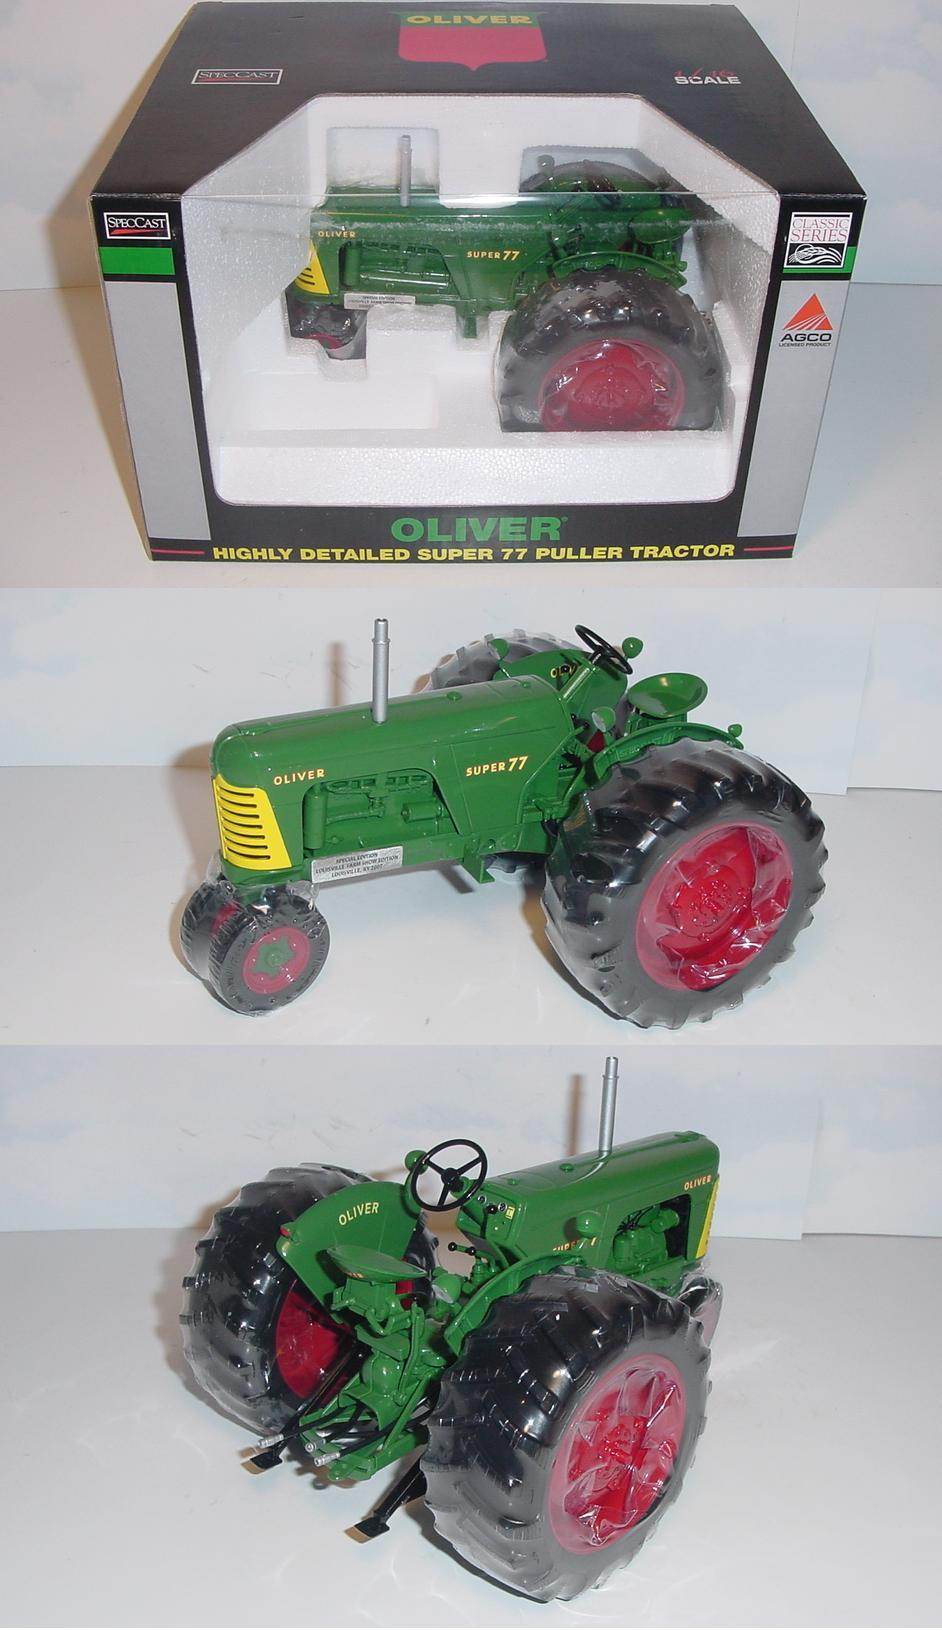 medium resolution of oliver 77 plow set nib oliver 77 row crop diesel nib oliver 77 row crop nib oliver 88 show tractor nib oliver 88 orchard nib